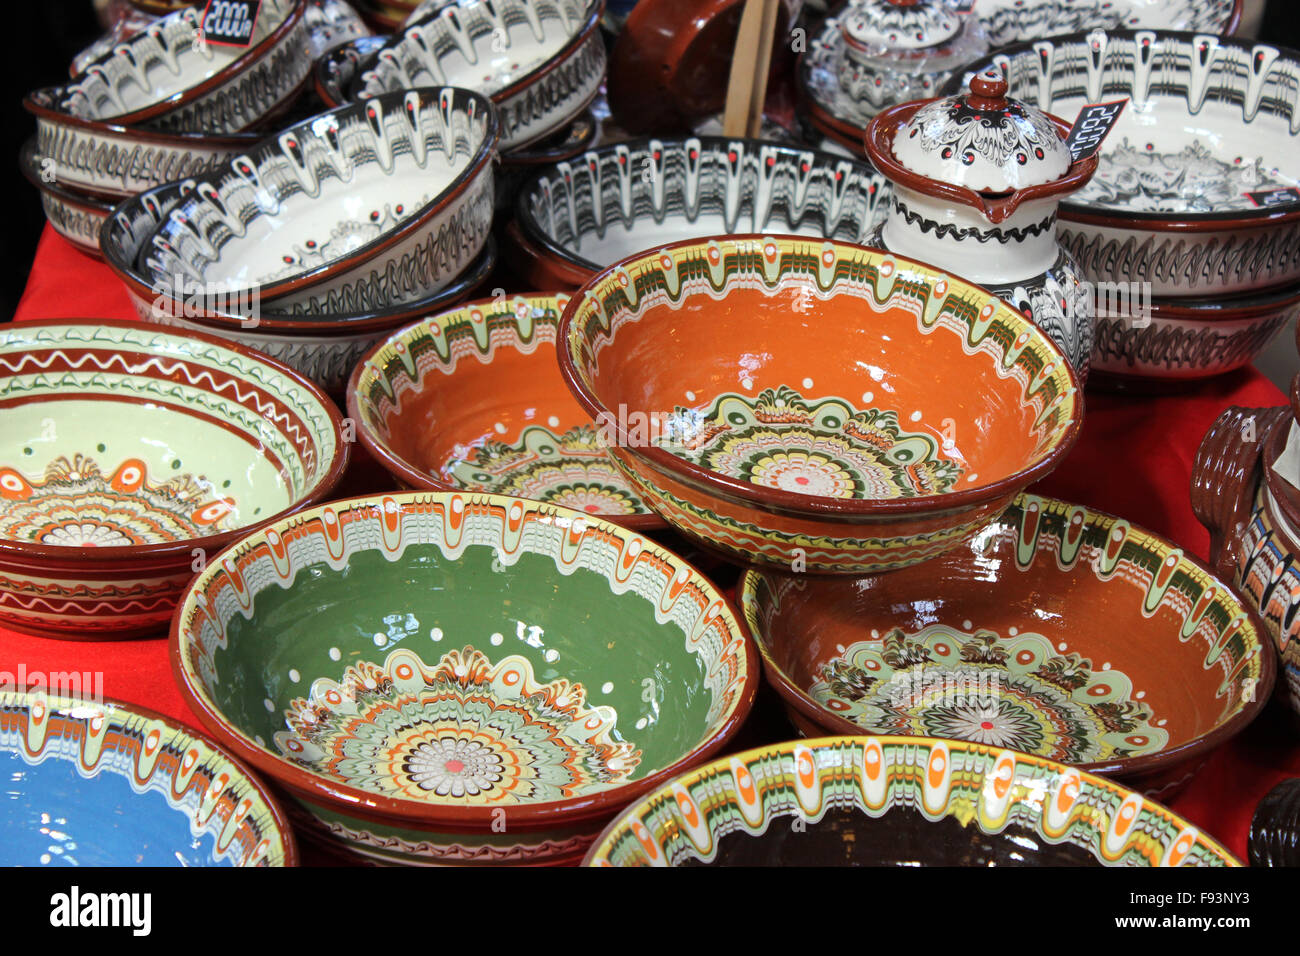 Colourful plates in budapest market & Colourful plates in budapest market Stock Photo: 91666823 - Alamy